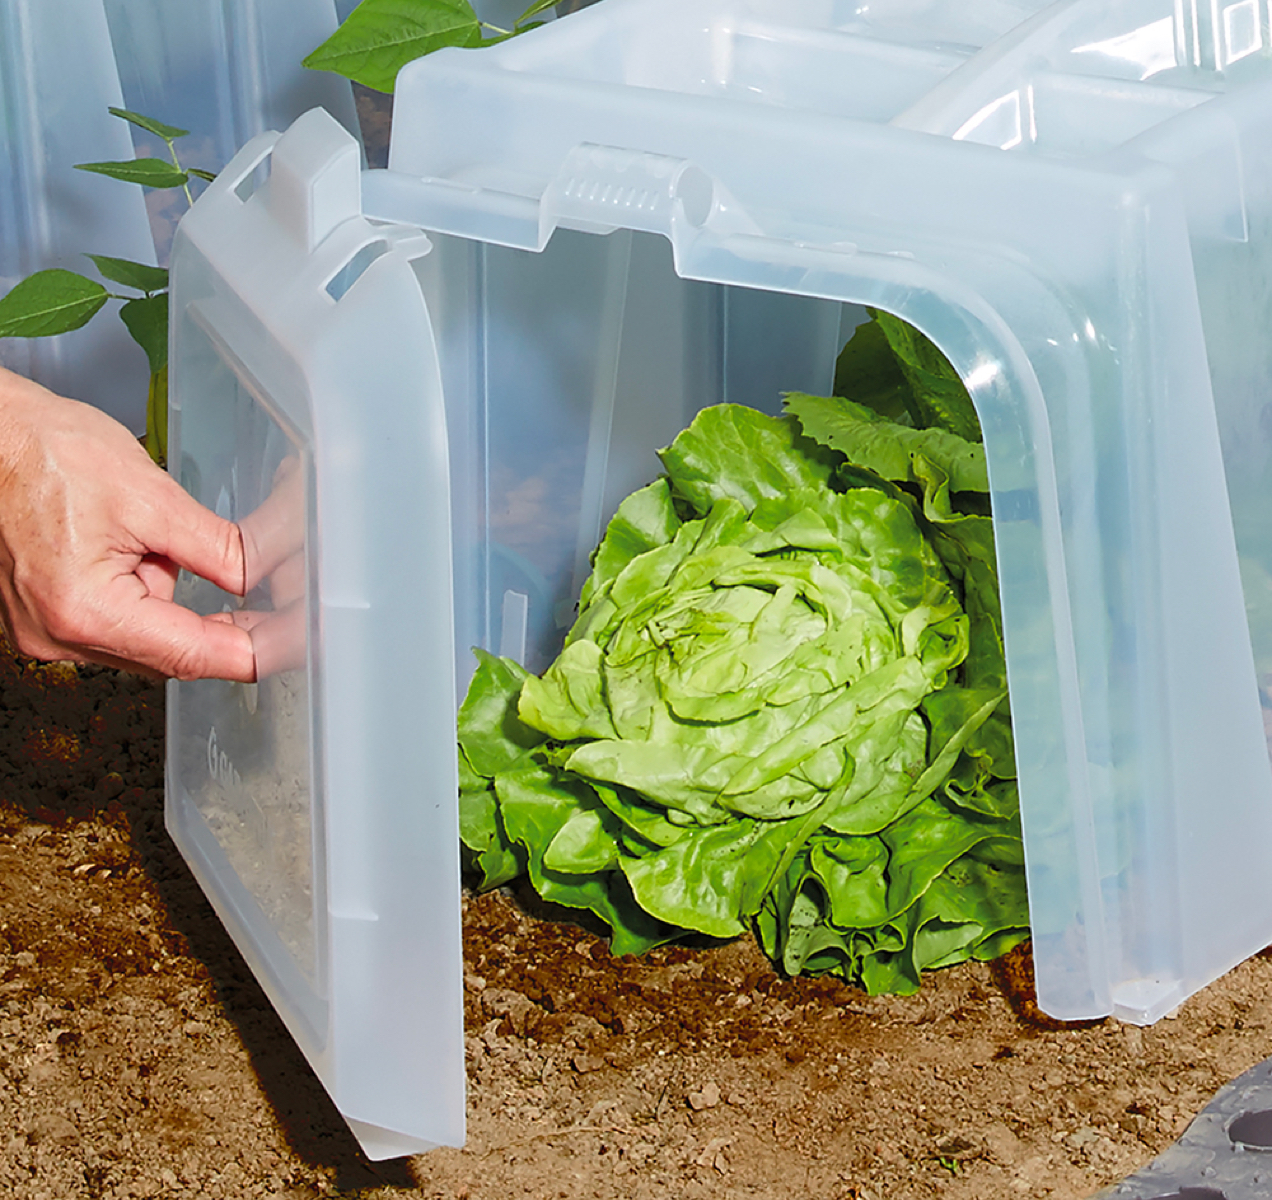 photo of lettuce protector, demonstrating it used in context